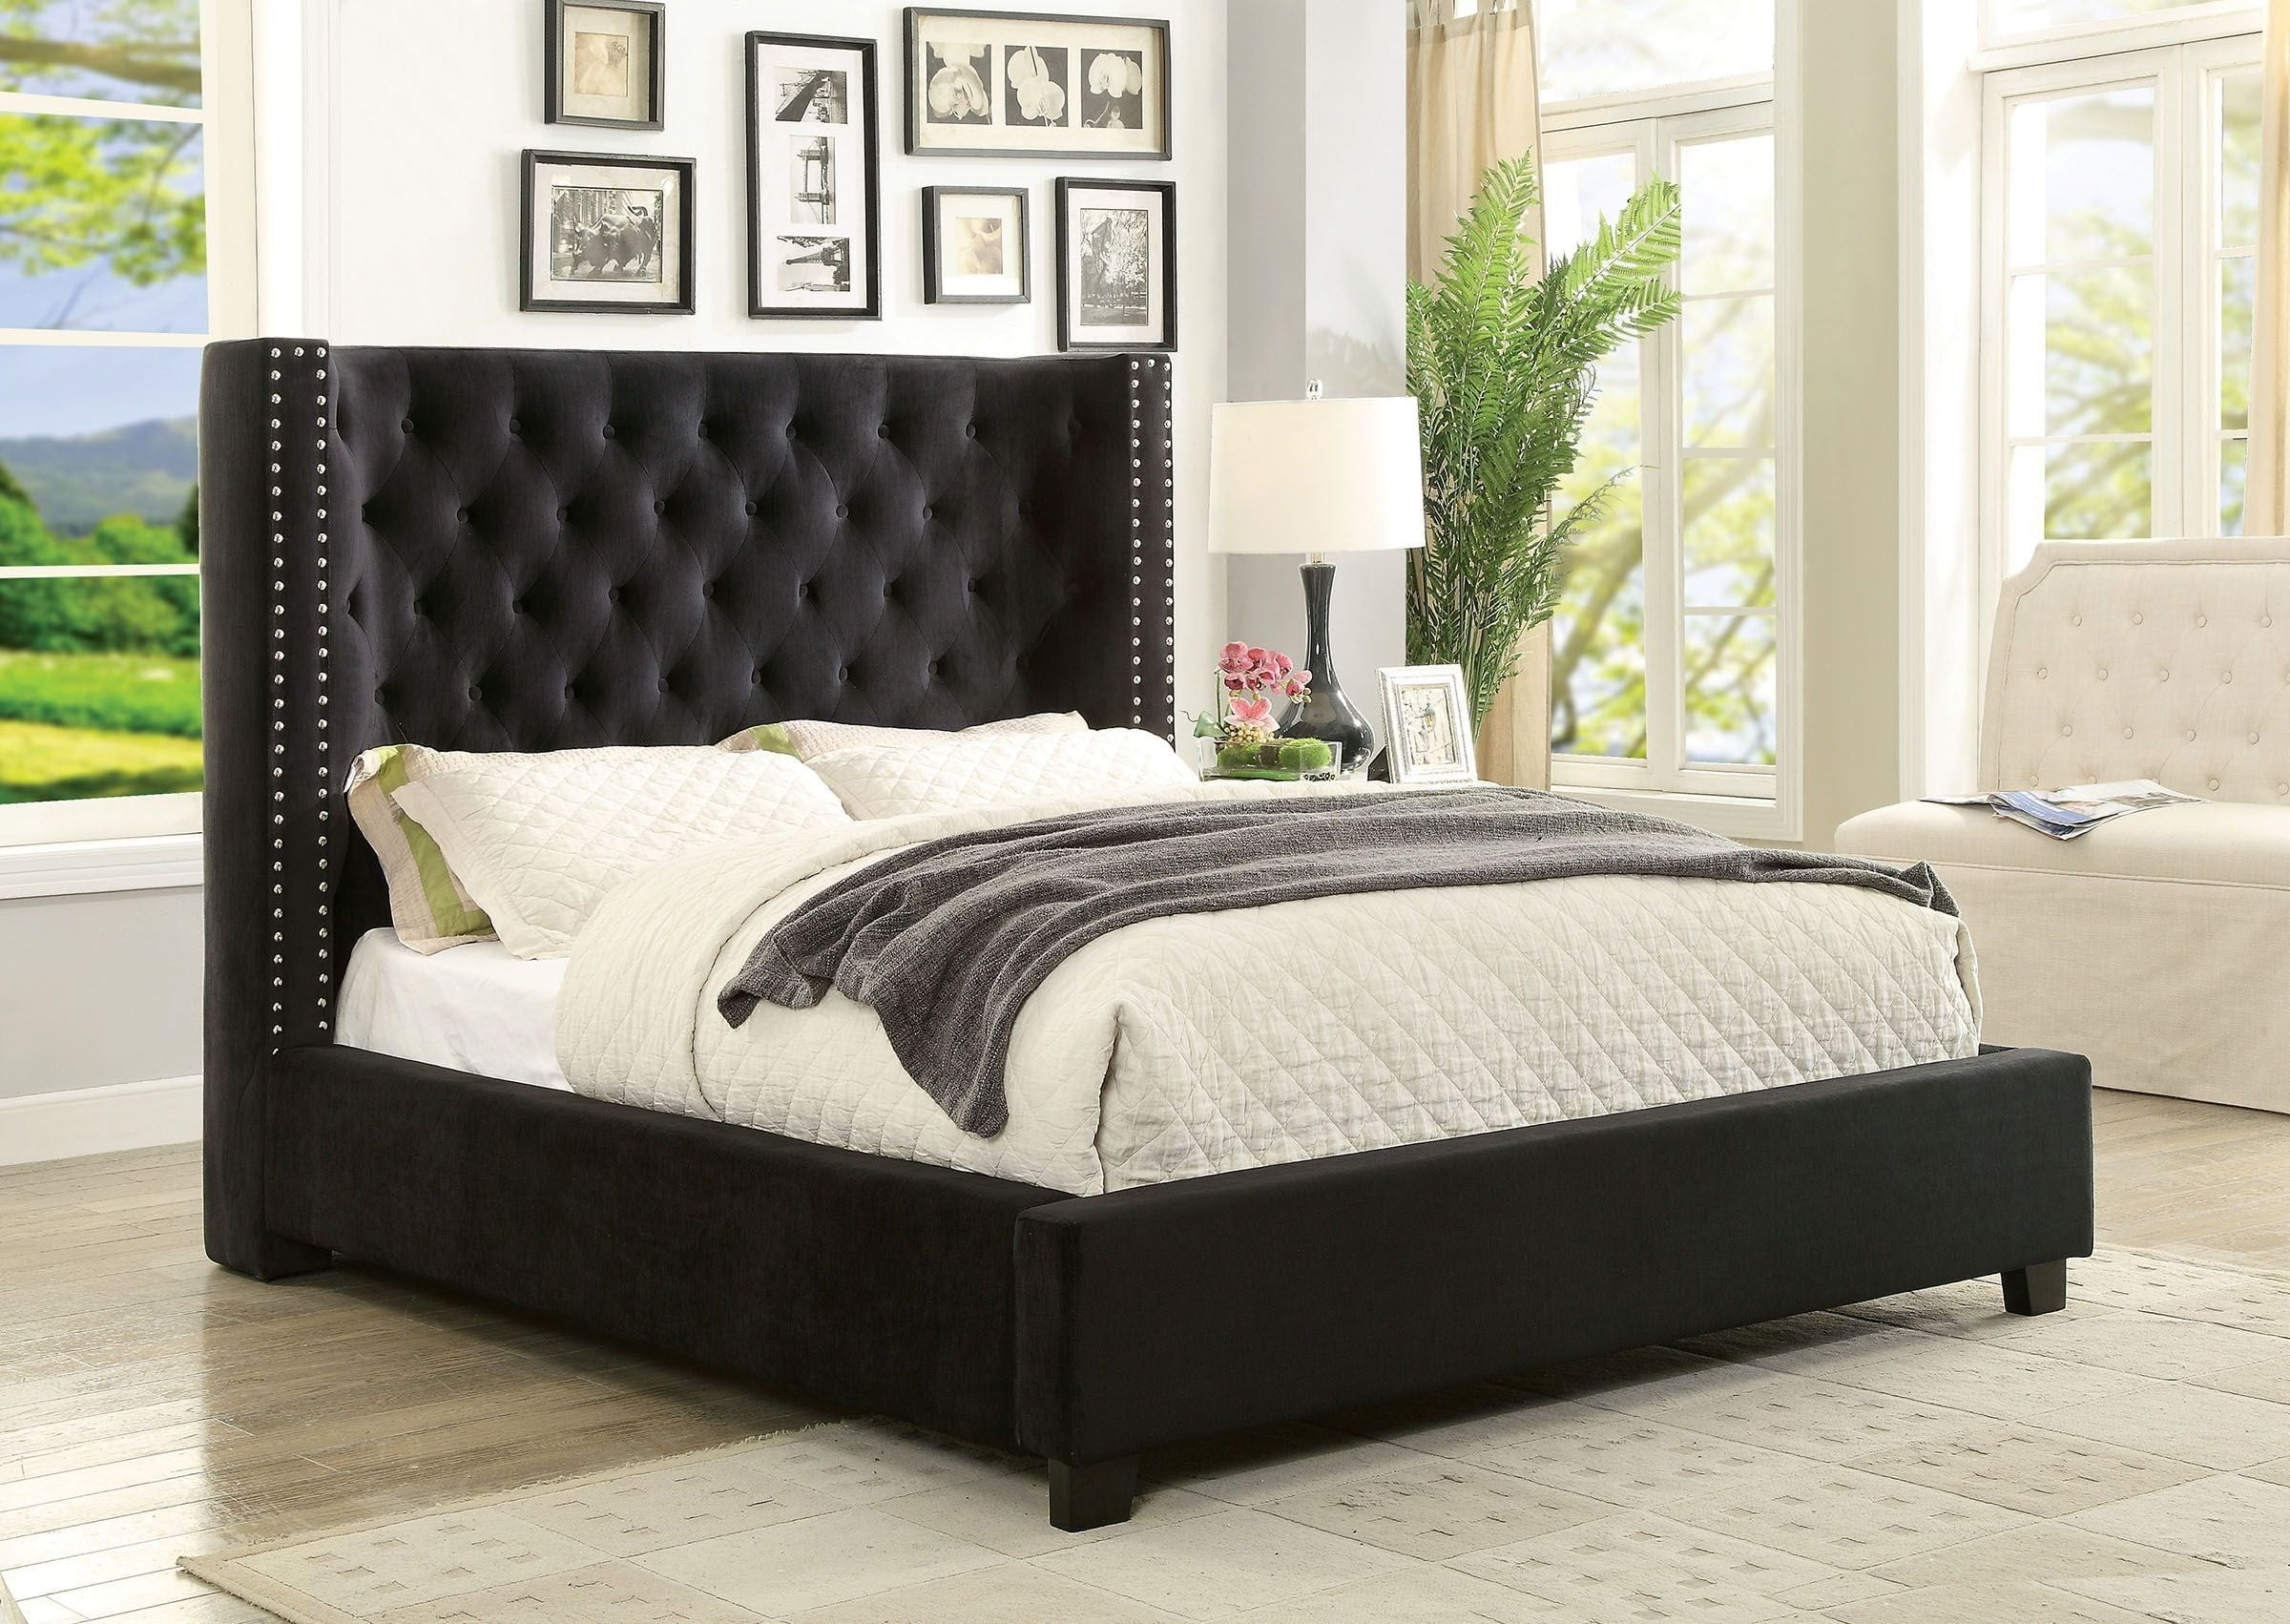 Essential Things To Know About California King Platform Bed Furniture Upholstered Beds Black Bedding